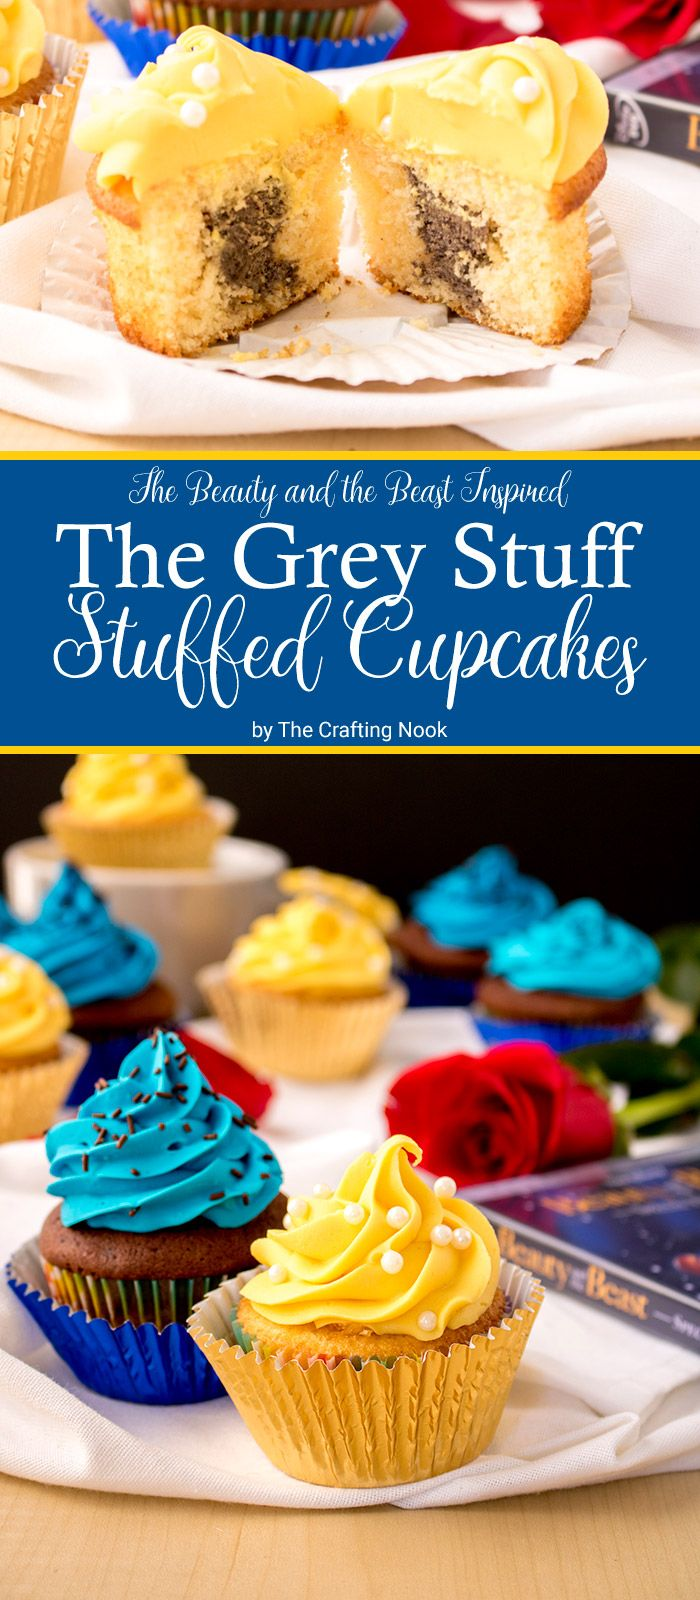 Excited about the Beauty and the Beast movie? I totally am! To celebrate it I've made these absolutely delicious The Grey Stuff Stuffed Cupcakes!!! You gotta try the felling!!!